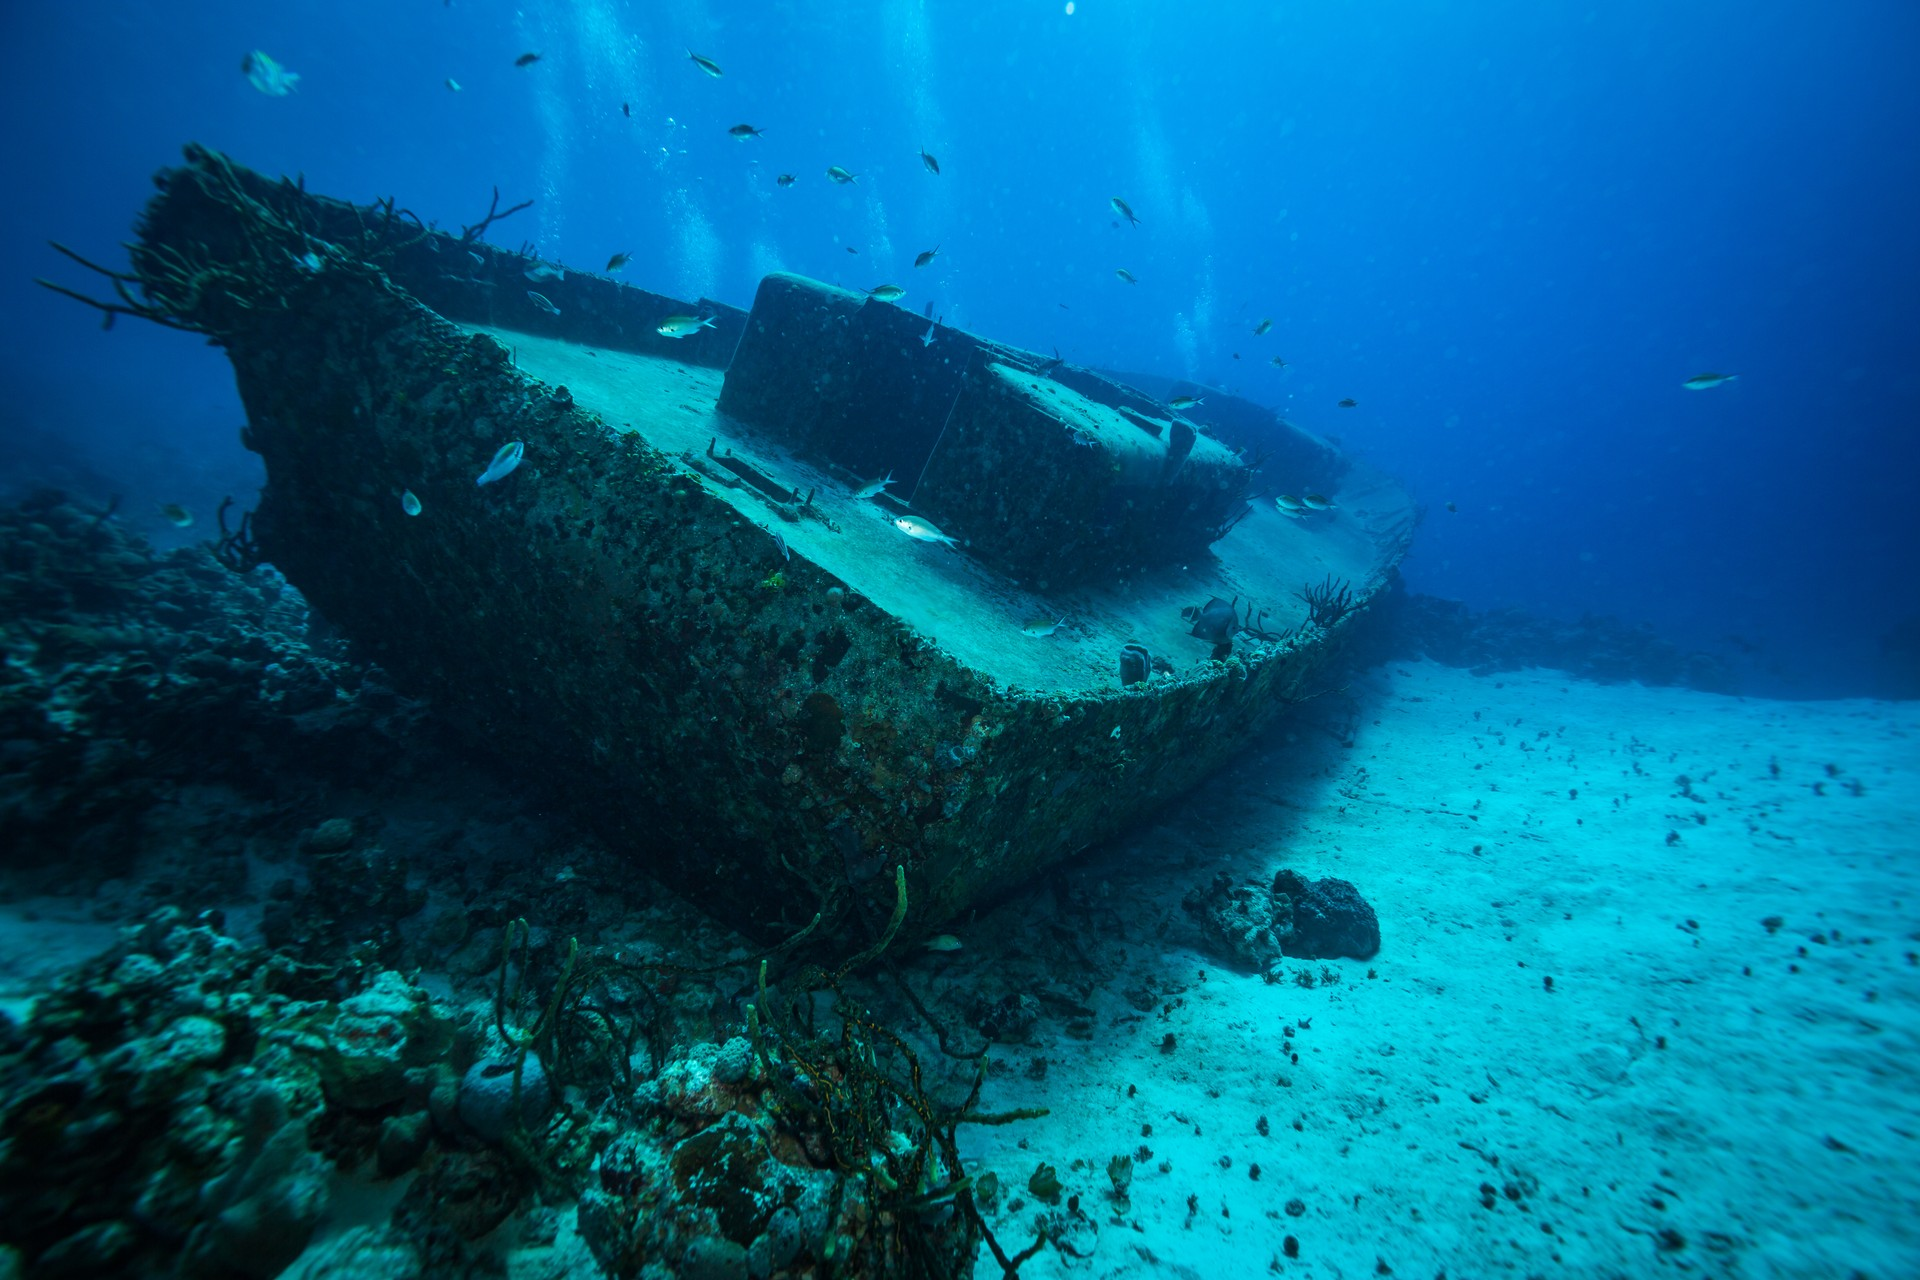 The purpose sunk ship found in Cuba's Bay of Pigs